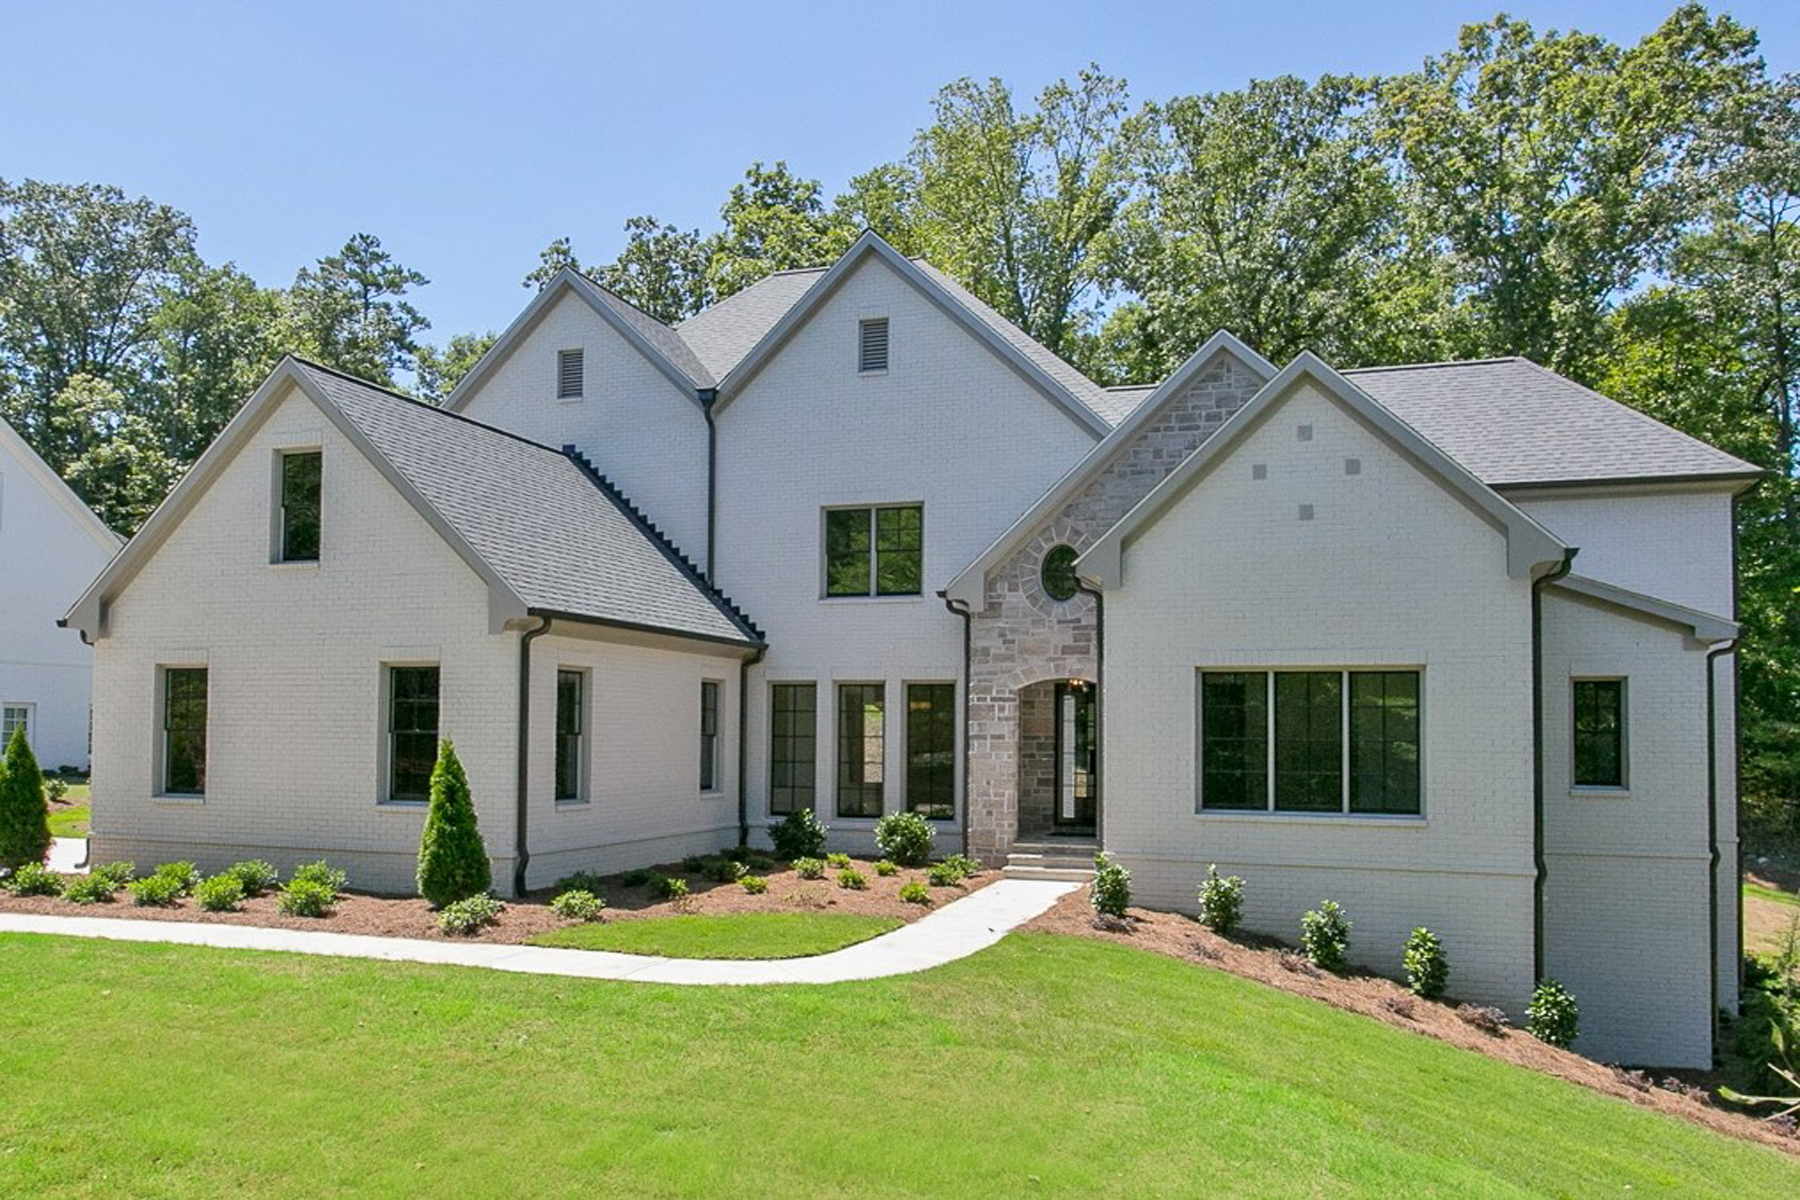 Single Family Homes por un Venta en Elegant New Home in Governors Towne Club Blends In-Town Style and Sophistication 4281 Governors Towne Drive NW, Acworth, Georgia 30101 Estados Unidos